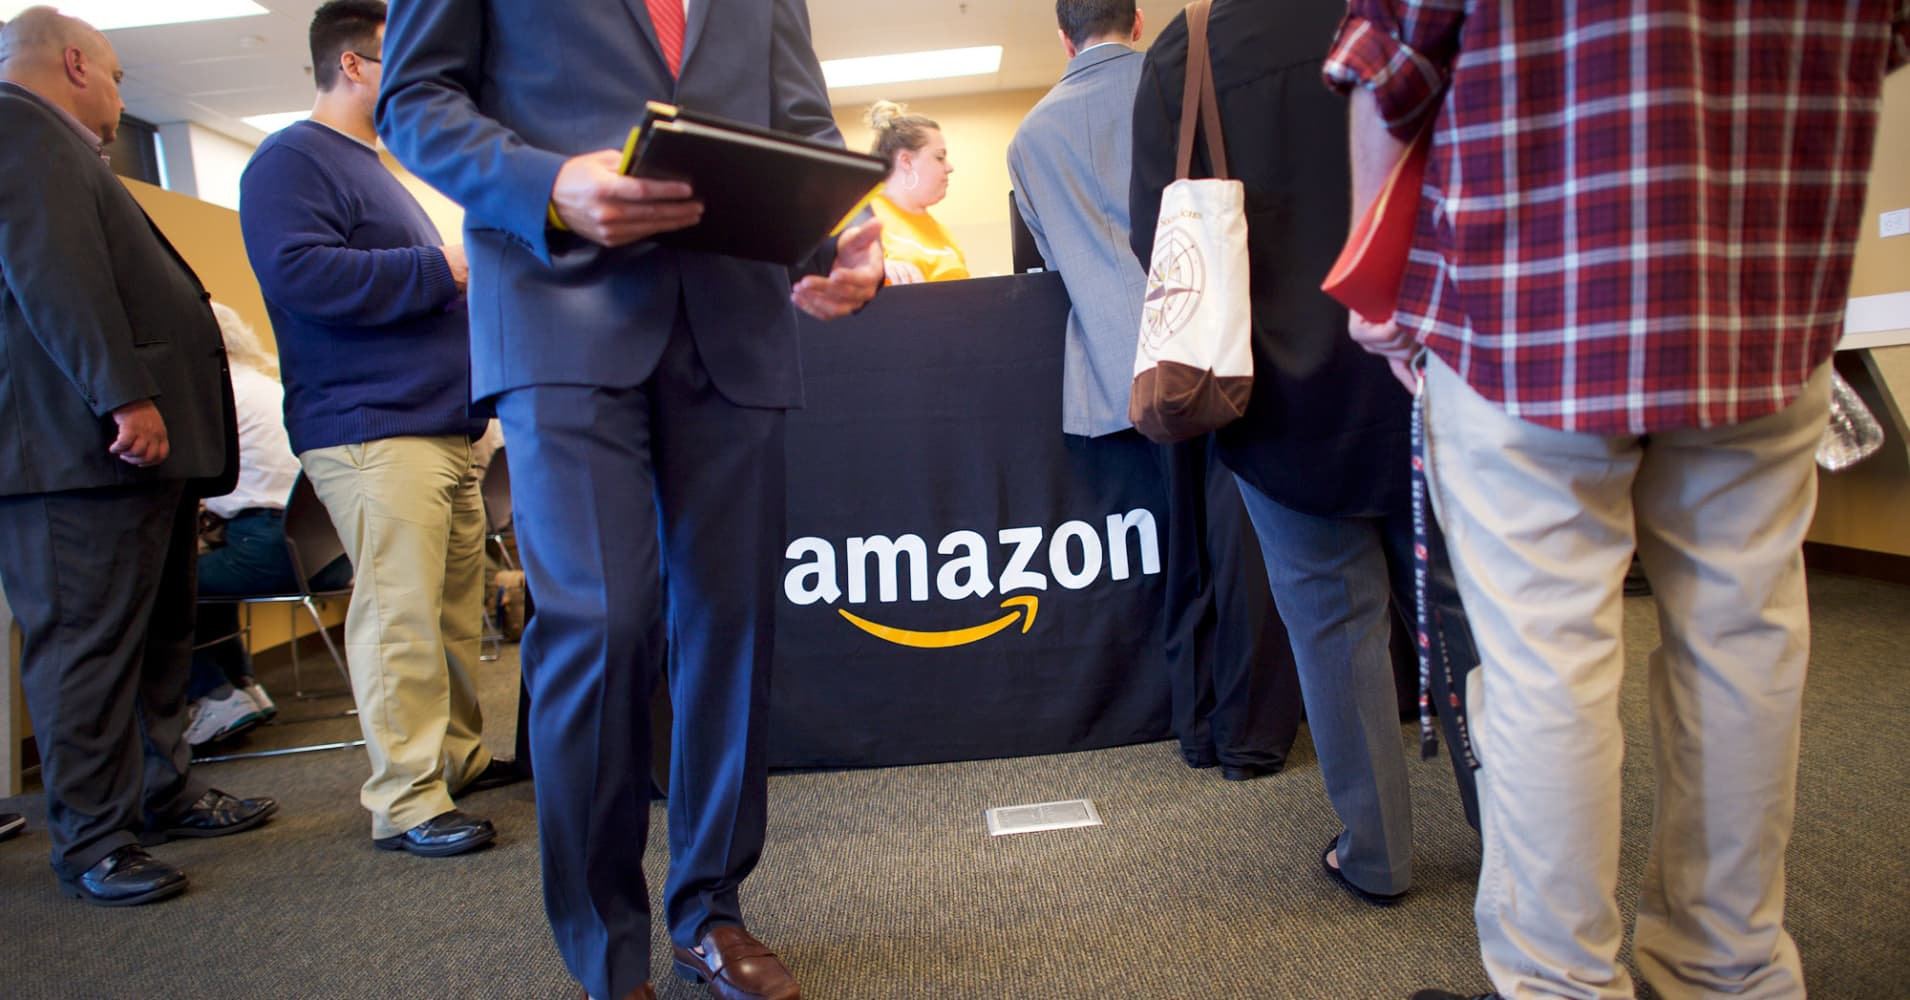 Job seekers register before interviews during an Amazon jobs fair at the Amazon Fulfillment Center on August 2, 2017 in Robbinsville, New Jersey.